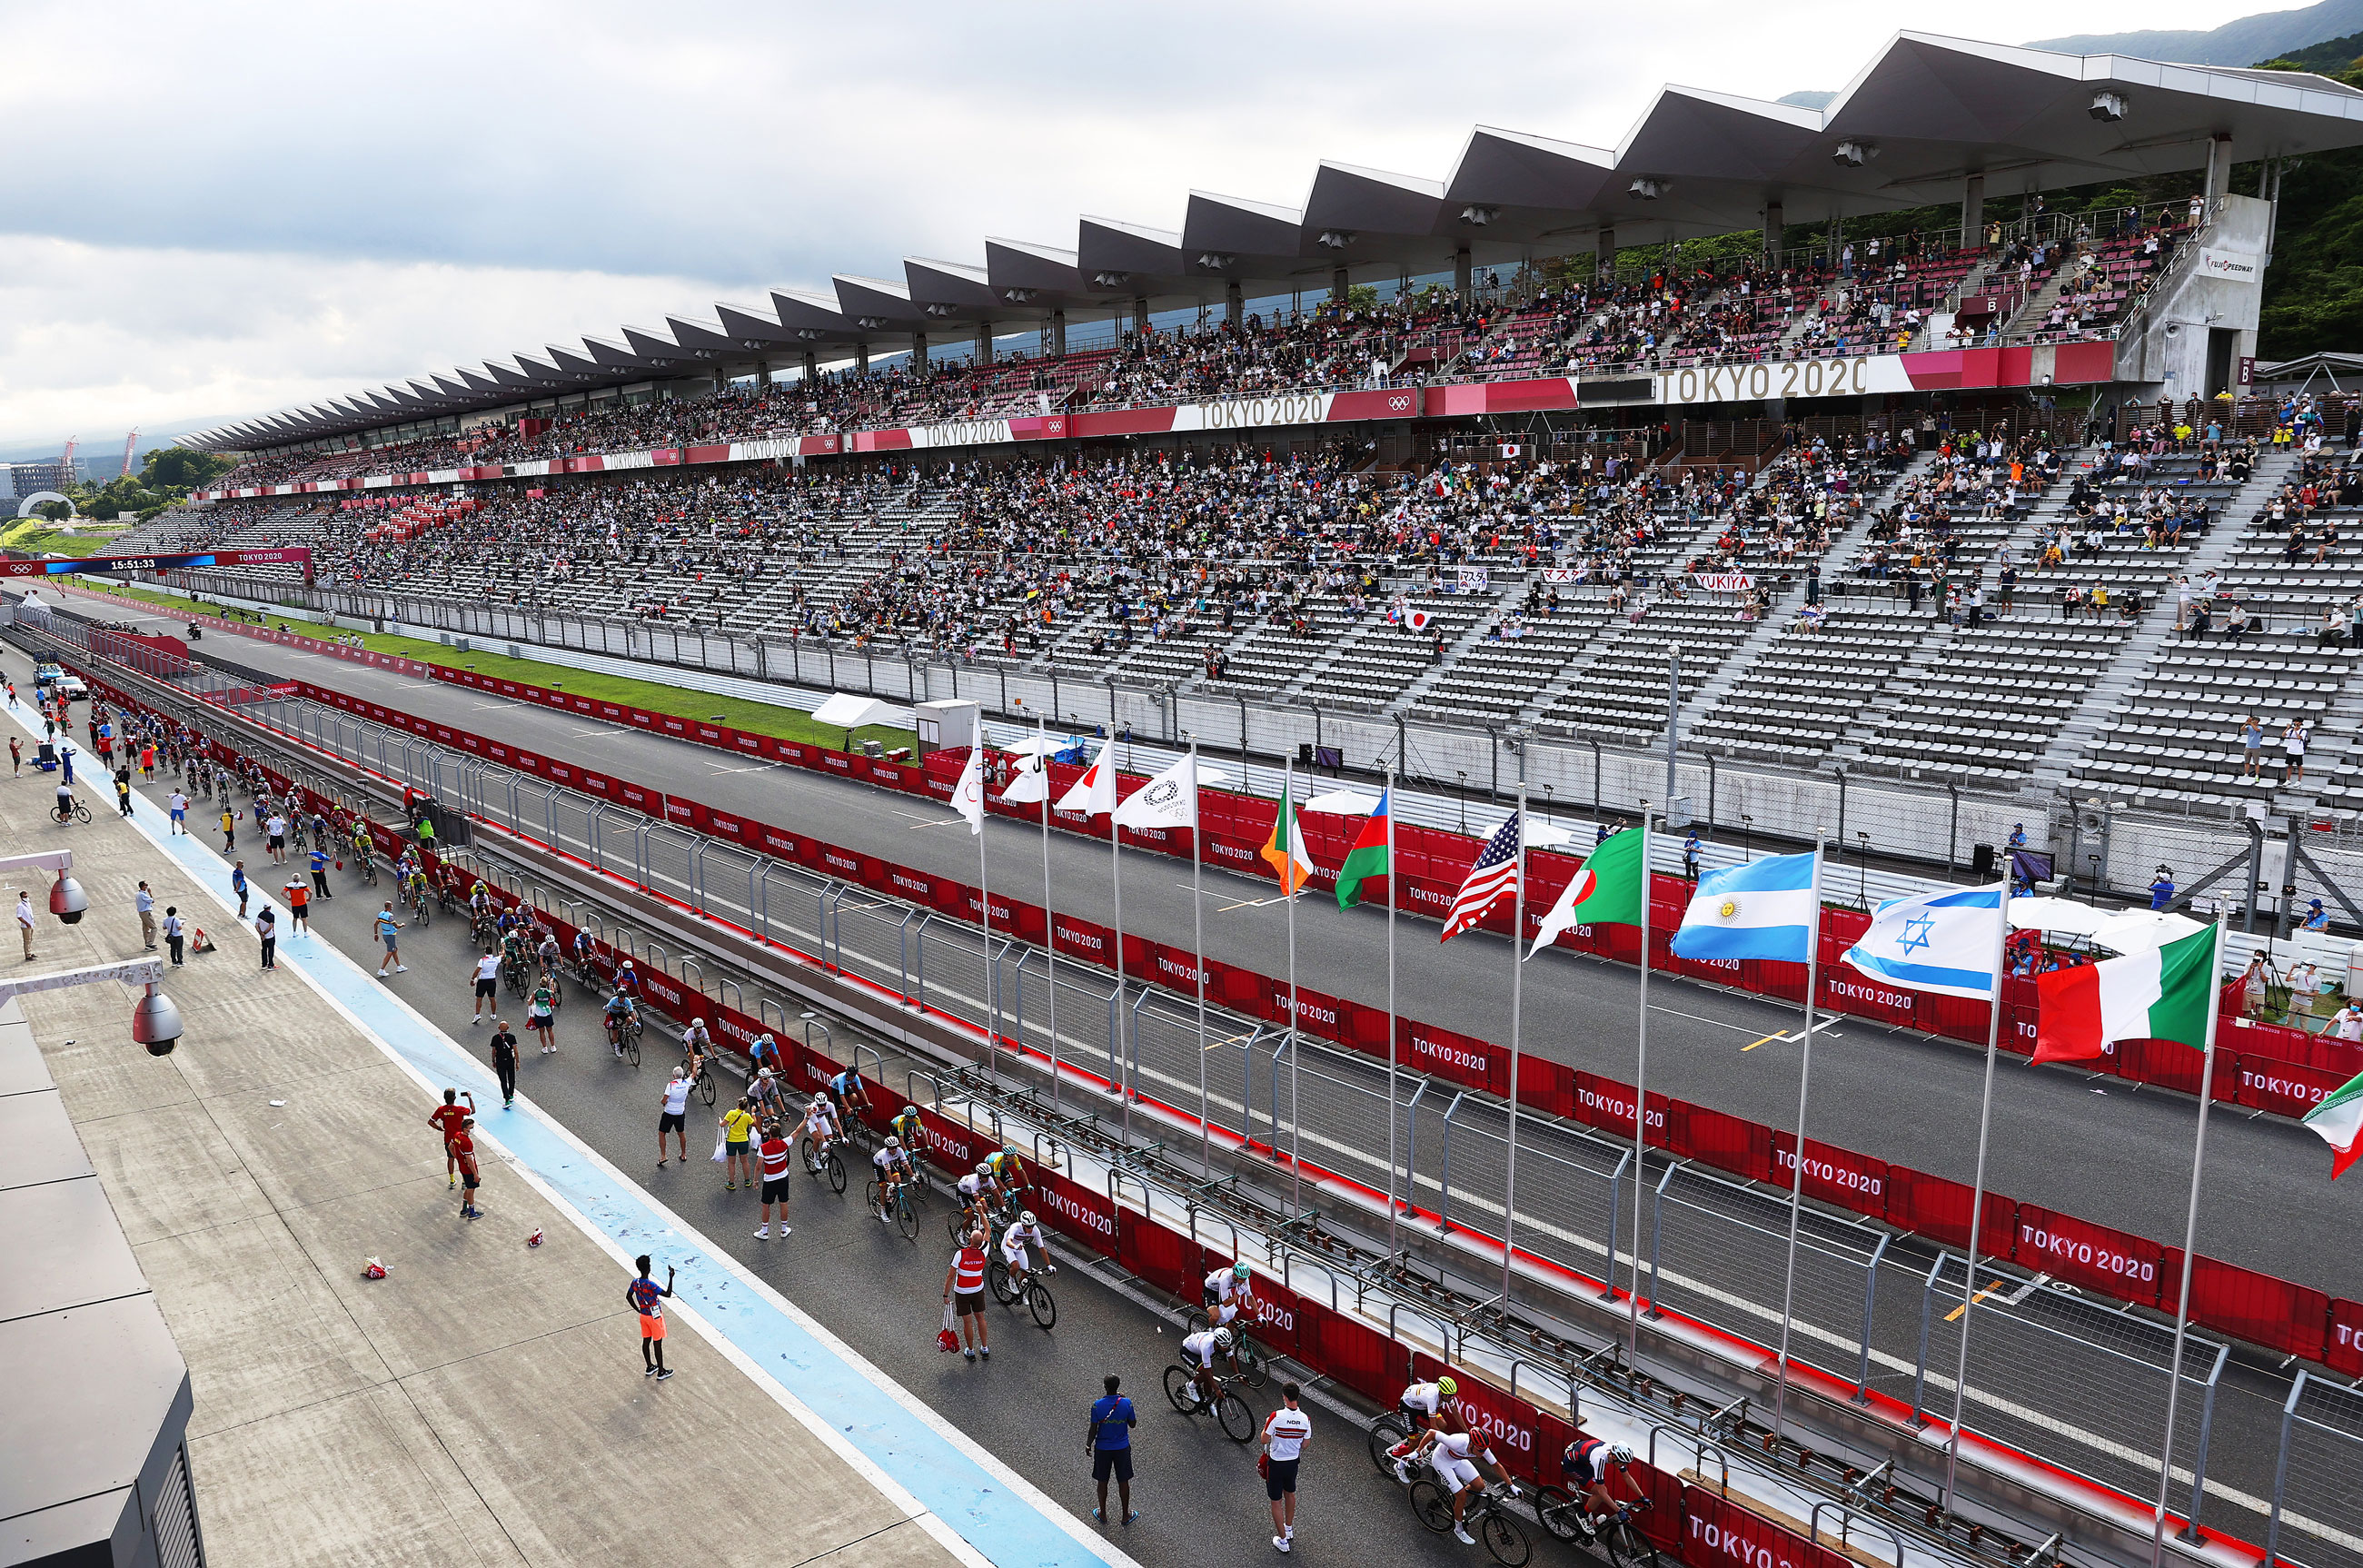 The peloton passes through the Fuji International Speedway circuit during the Men's road race on July 24.